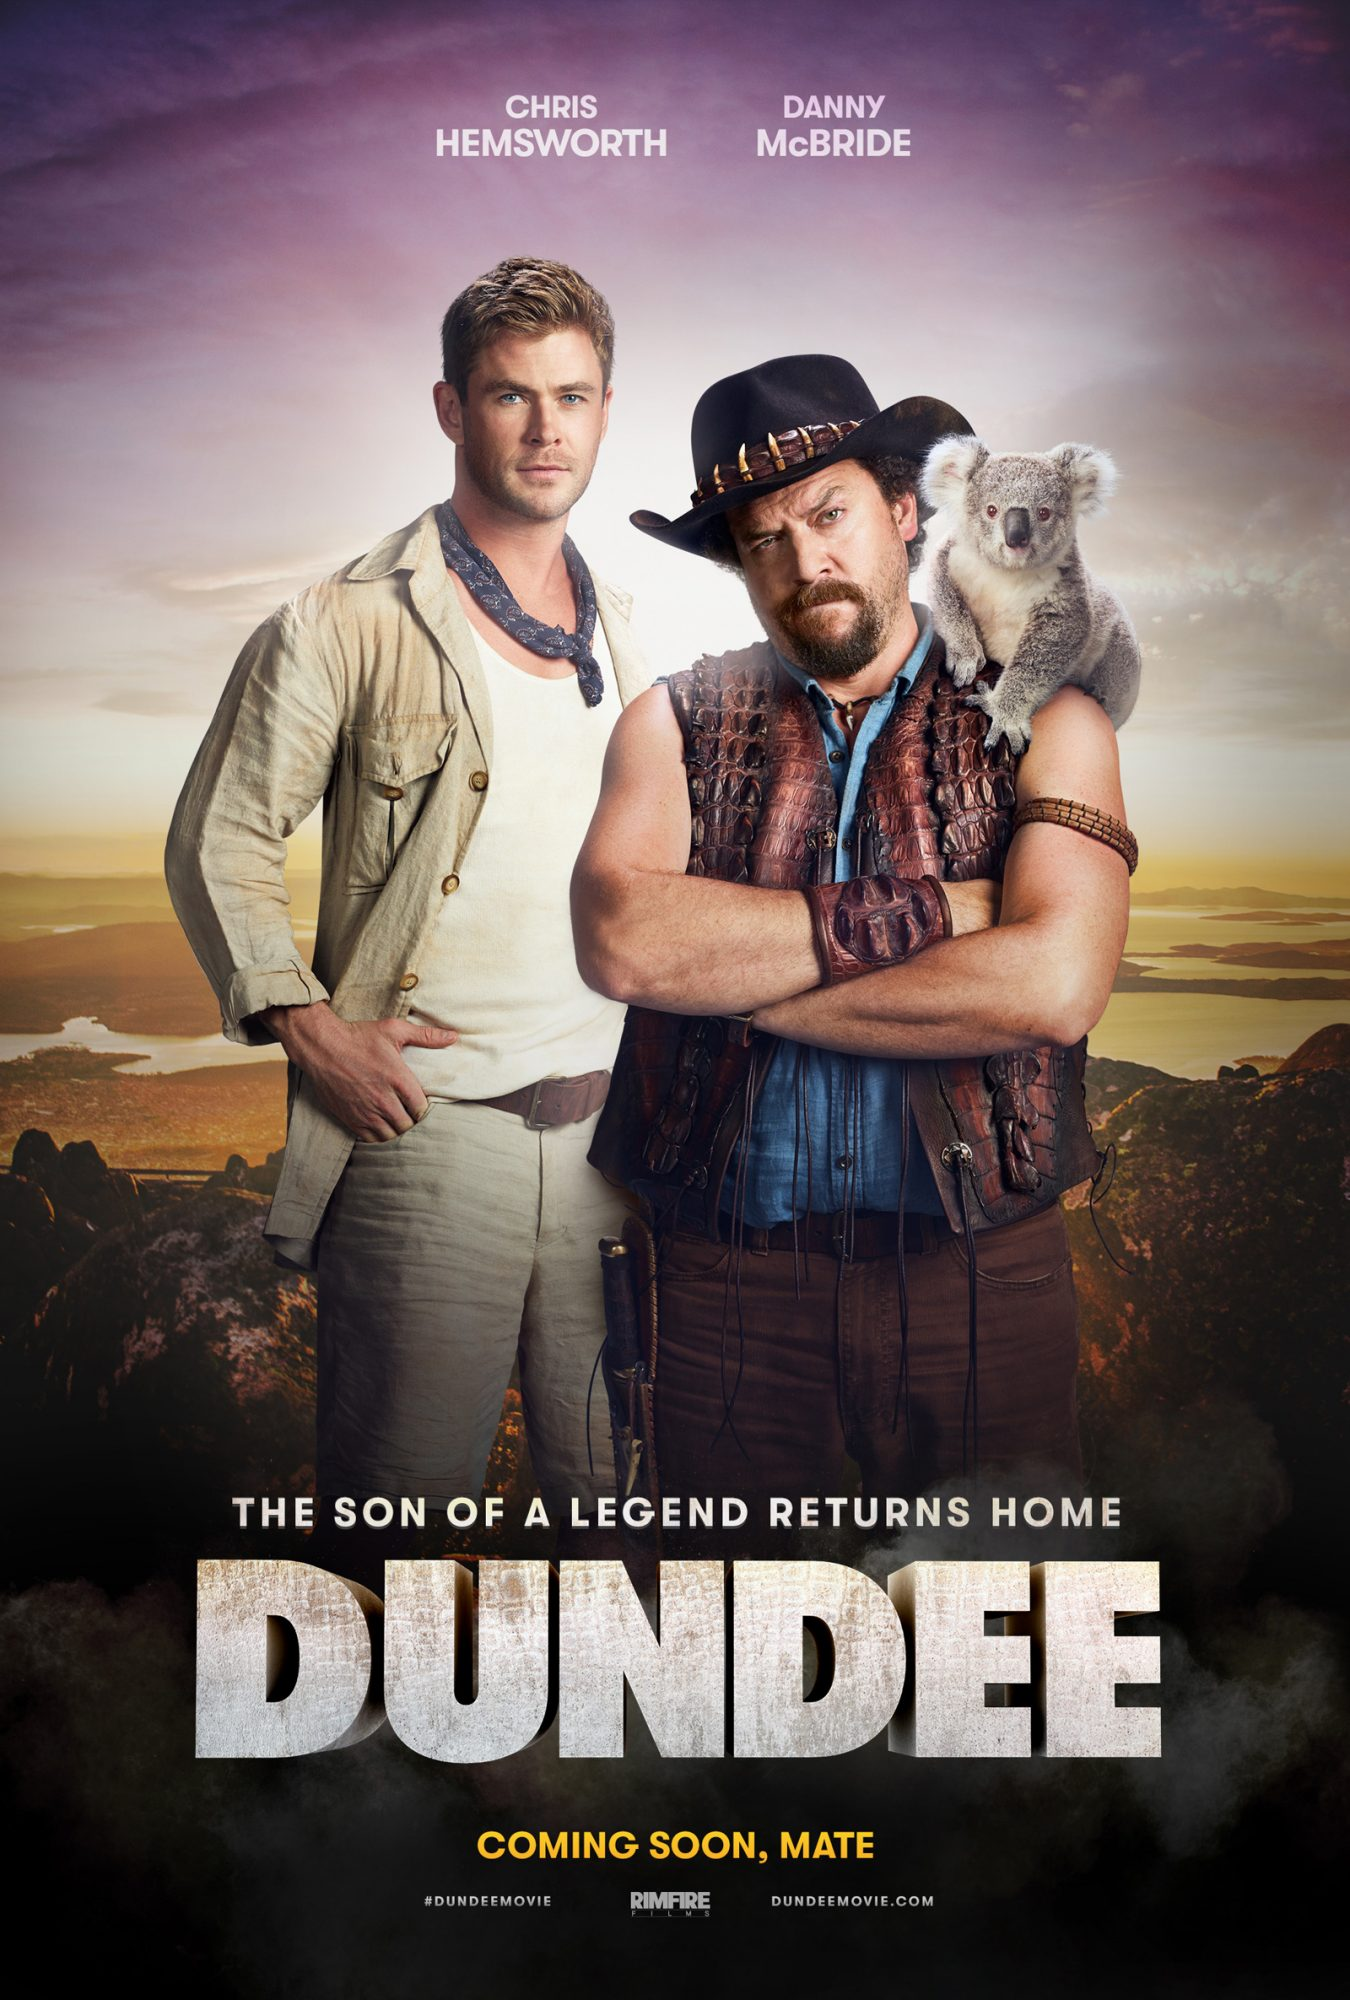 The poster for Tourism Australia's Super Bowl ad with a Crocodile Dundee spoof.